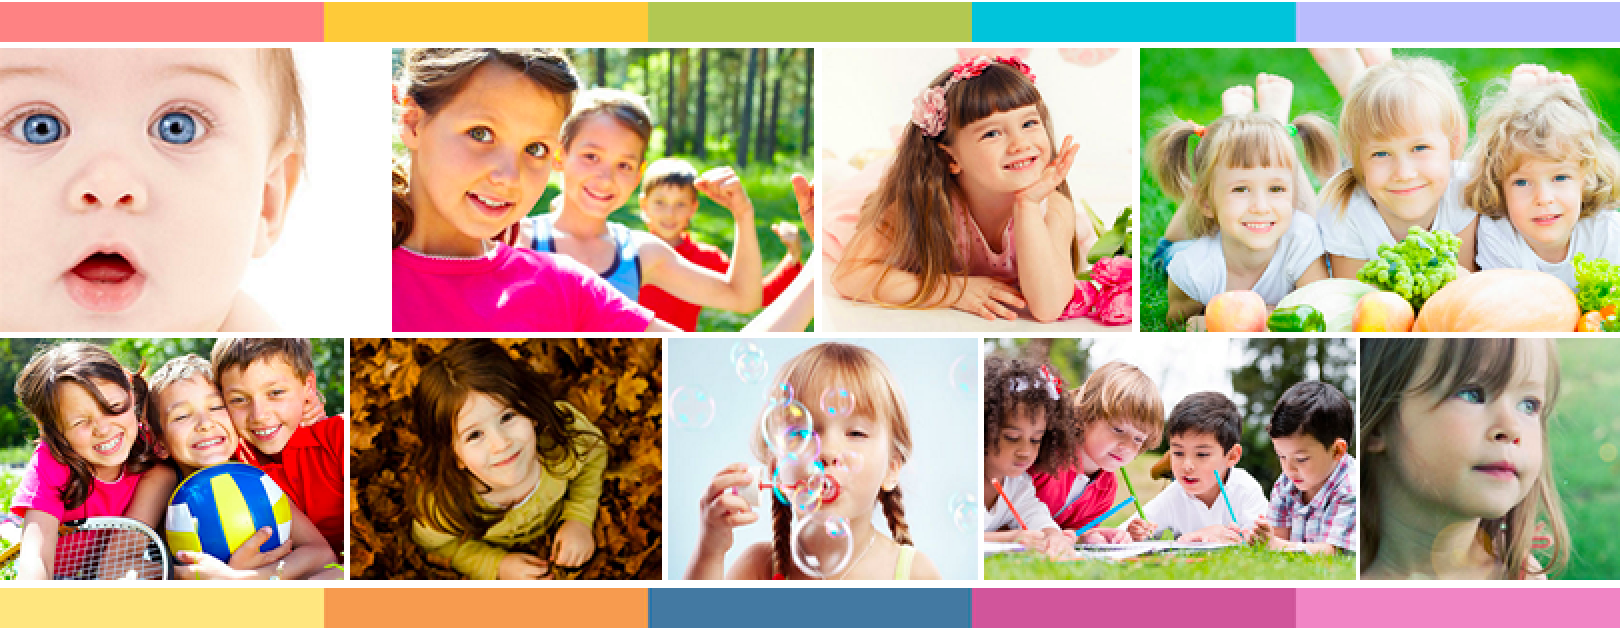 Utah's Top Rated Local® Child Care Providers Award Winner: Discovery Tree Academy